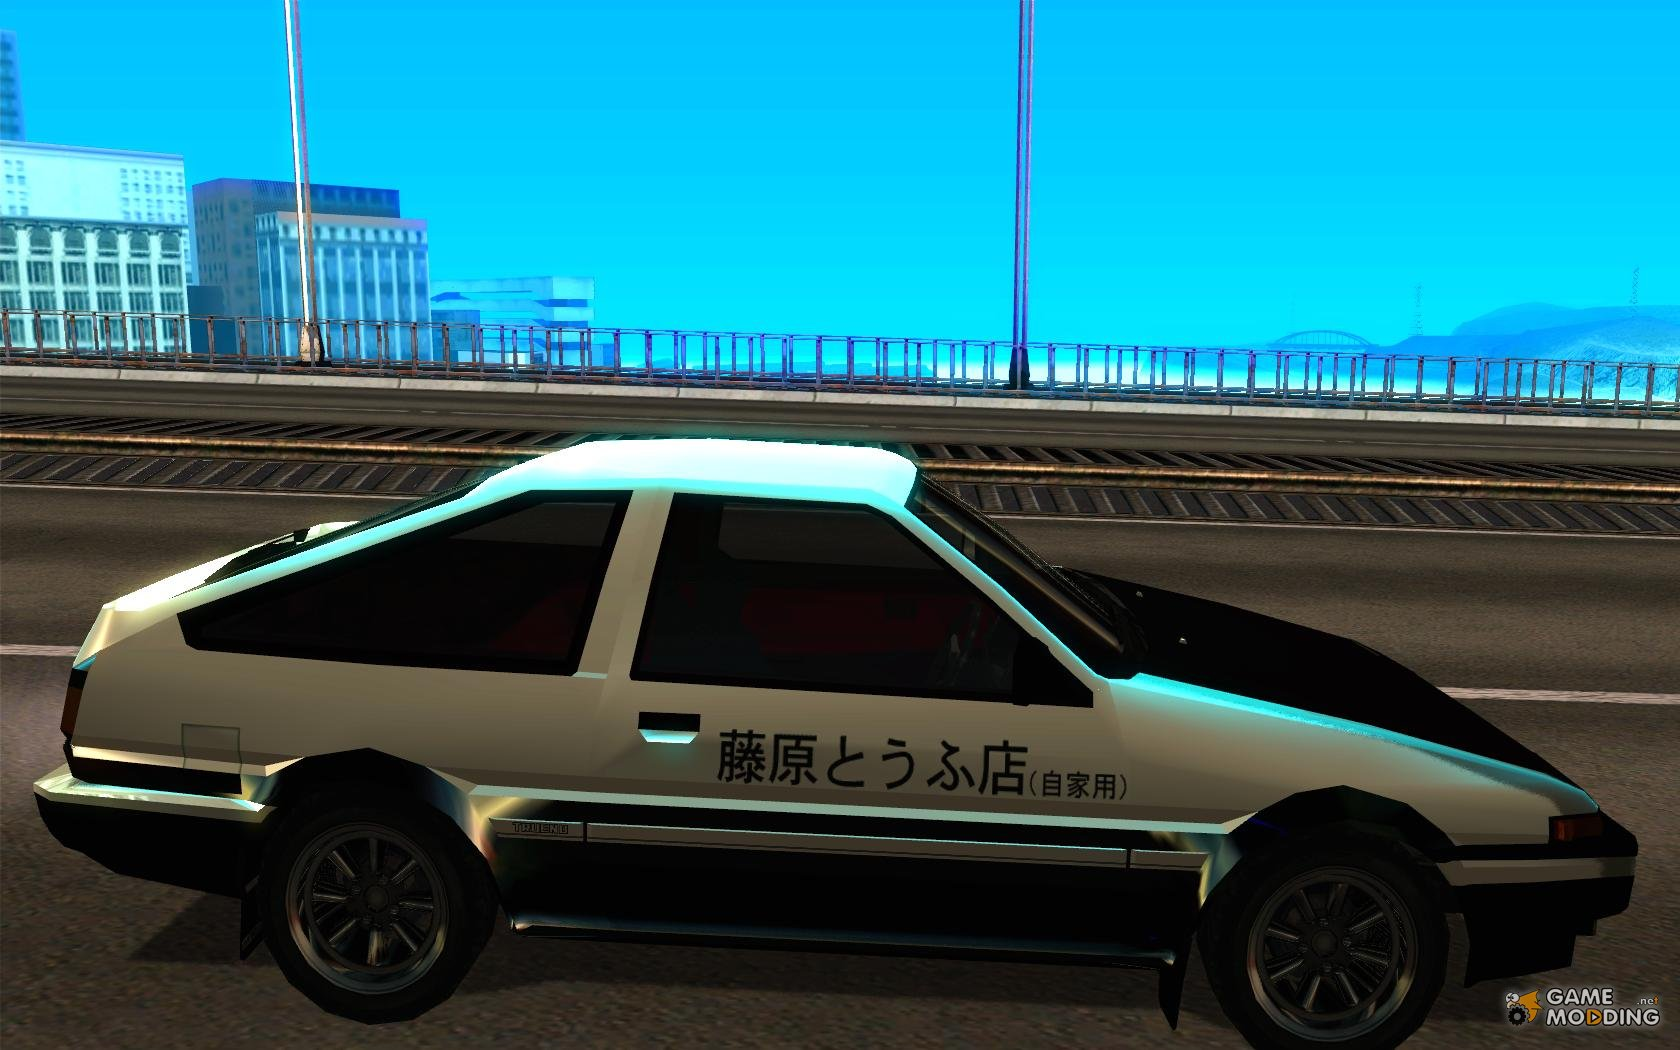 toyota sprinter trueno gt apex ae86 initial d 1983 for gta san andreas. Black Bedroom Furniture Sets. Home Design Ideas